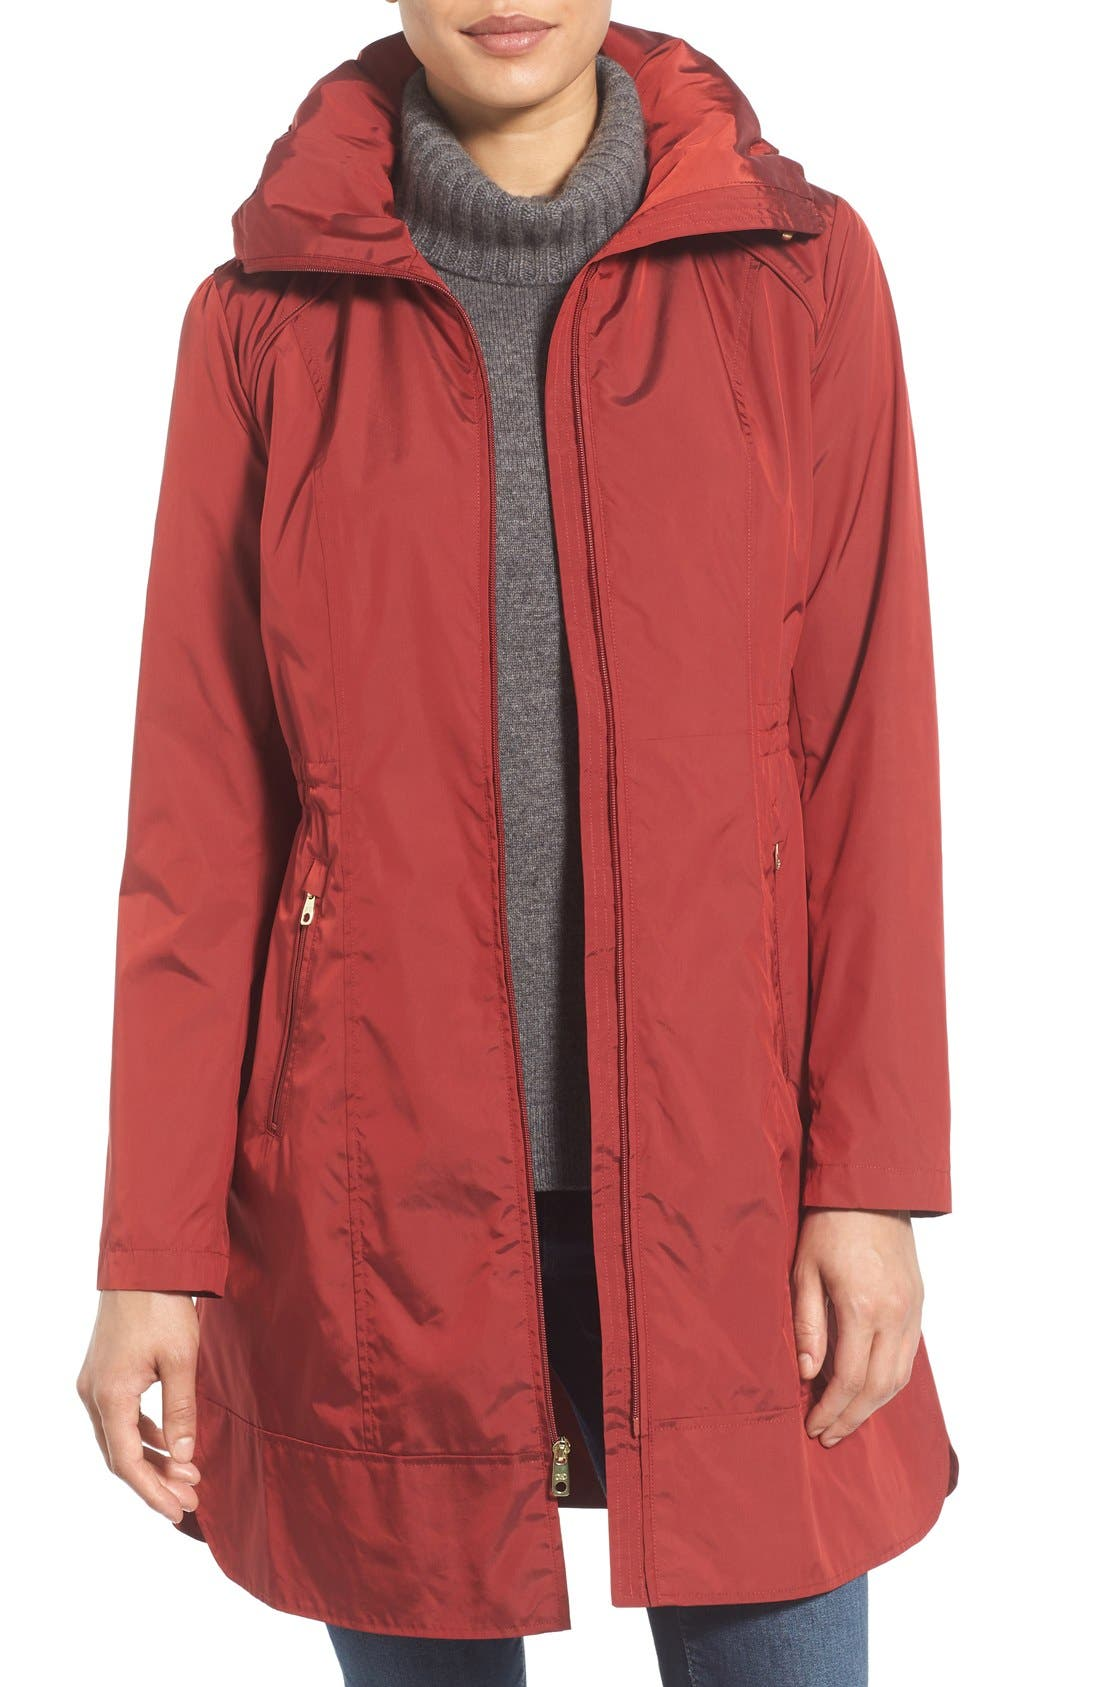 Main Image - Cole Haan Signature Packable Rain Jacket